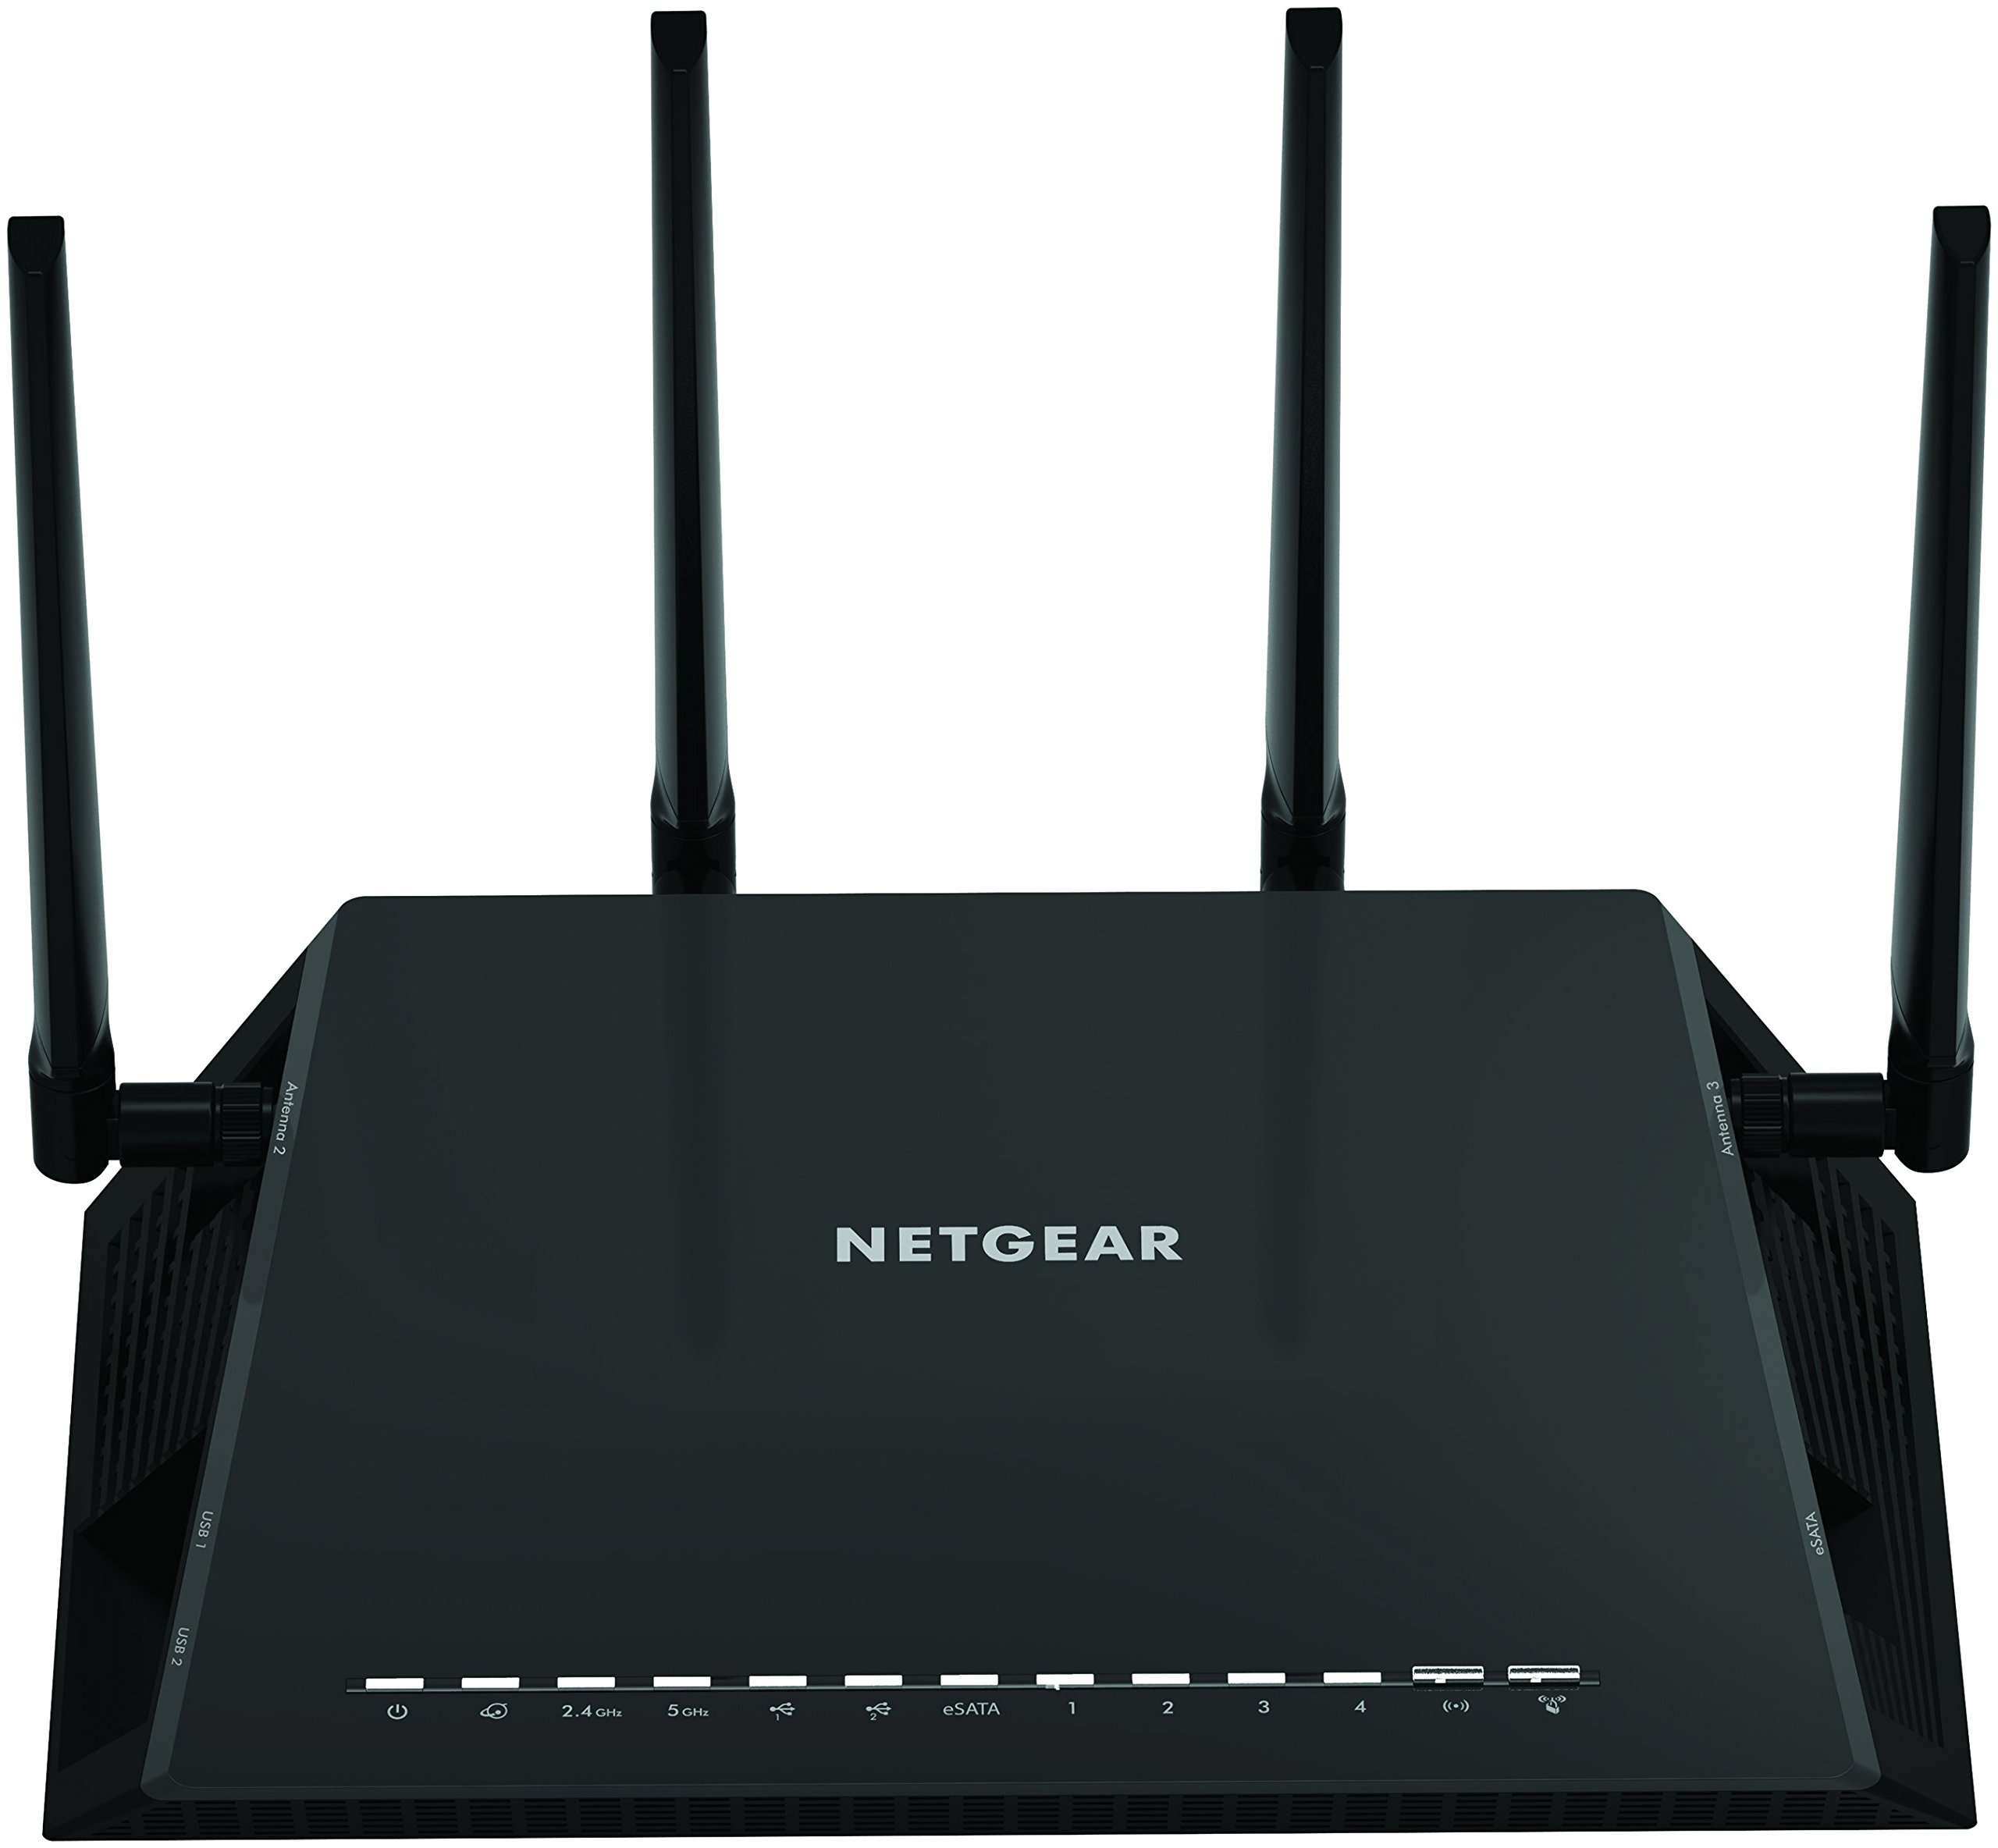 NETGEAR Nighthawk X4S - AC2600 4x4 MU-MIMO Smart WiFi Dual Band Gigabit Gaming Router (R7800-100NAS) Compatible with Amazon Echo/Alexa by NETGEAR